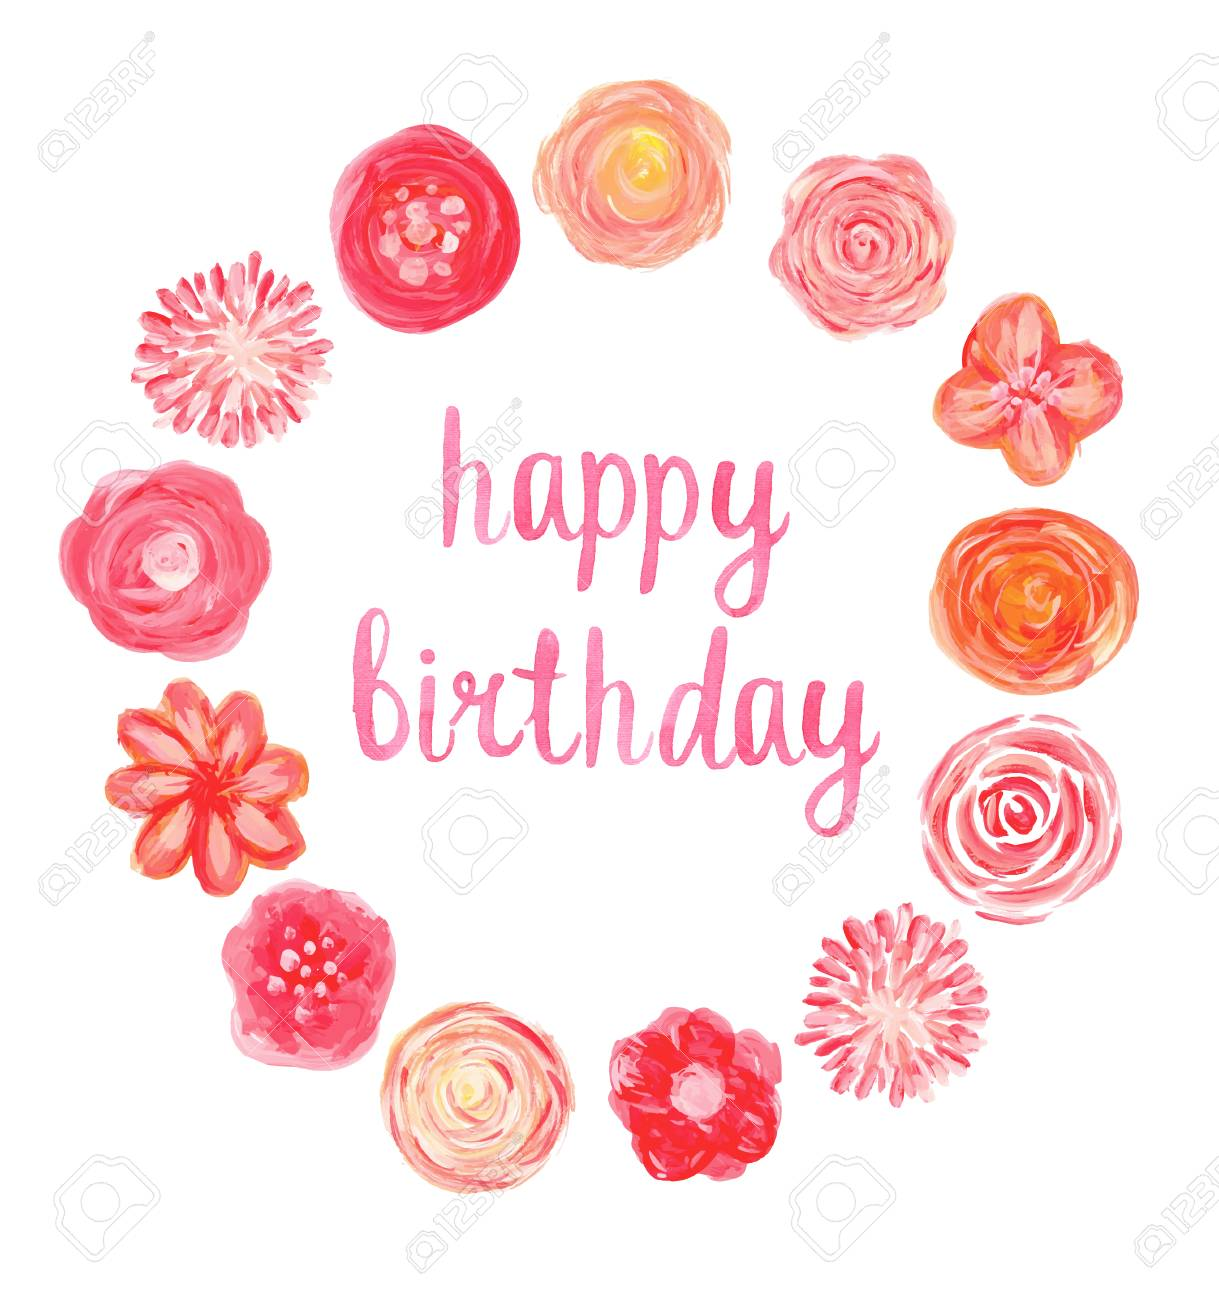 Happy birthday watercolor card with hand painted flower frame happy birthday watercolor card with hand painted flower frame stock vector 41723994 izmirmasajfo